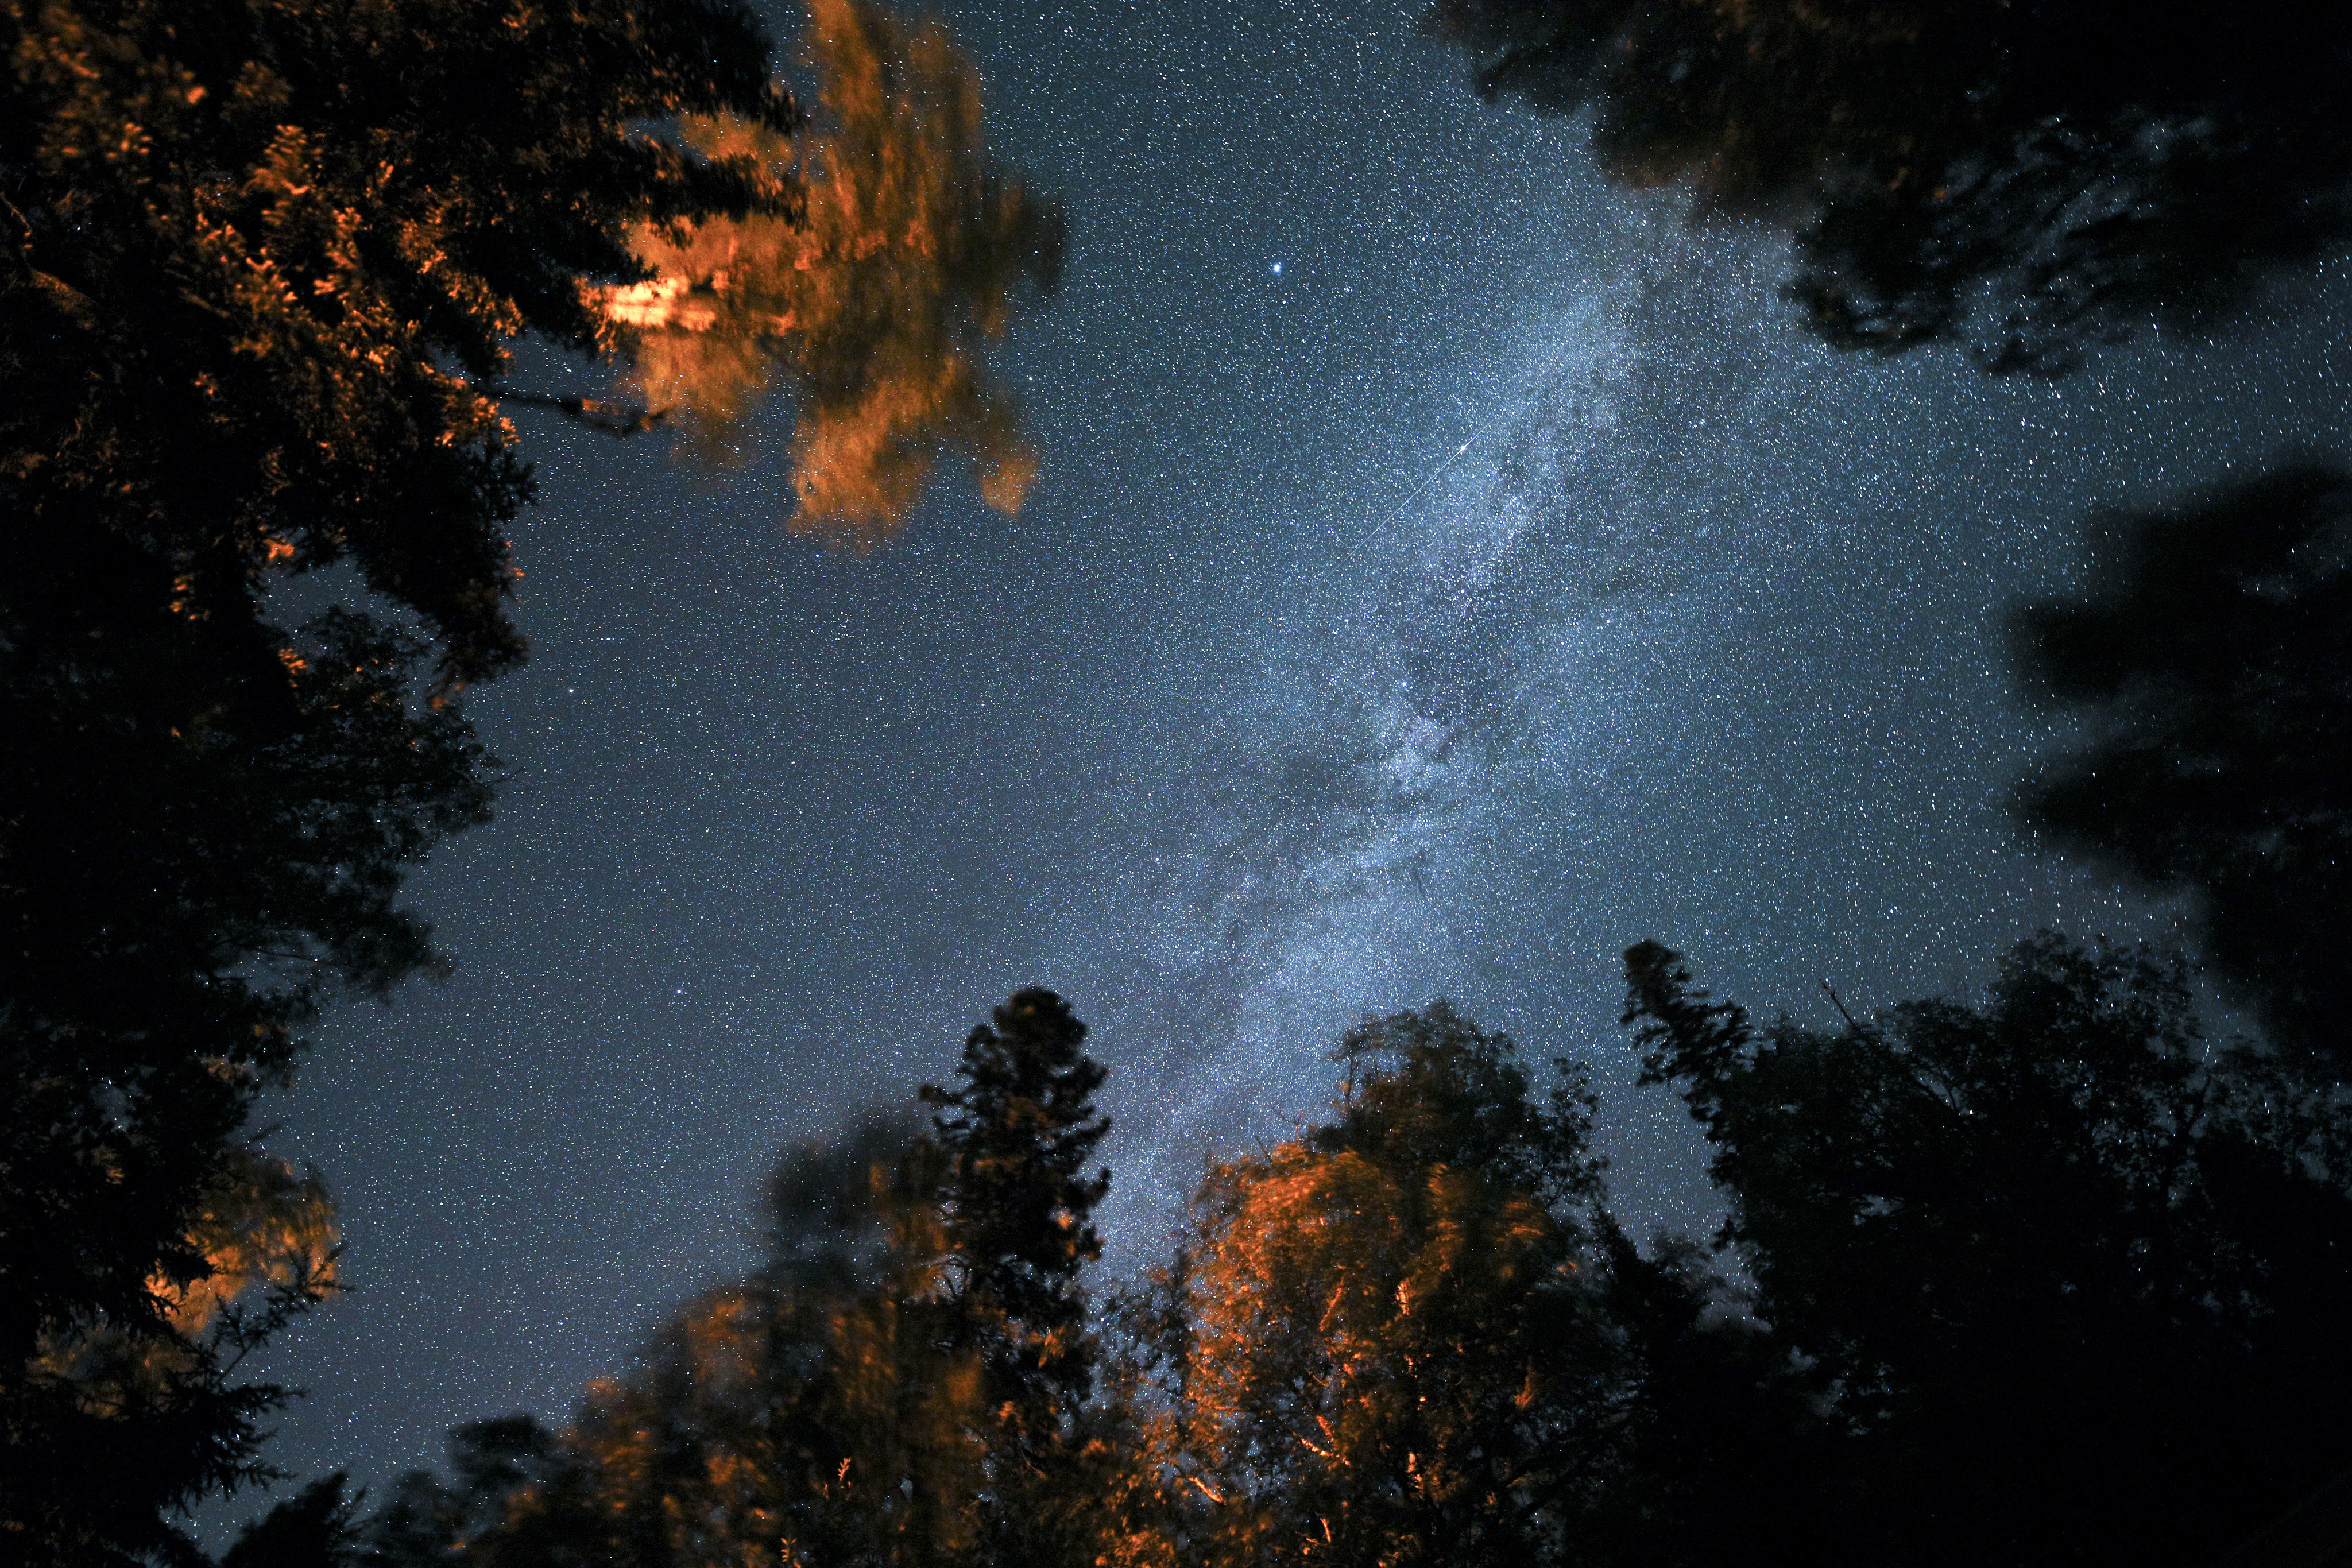 Campsites at Temperance River State Park along the North Shore offer stunning nighttime views.